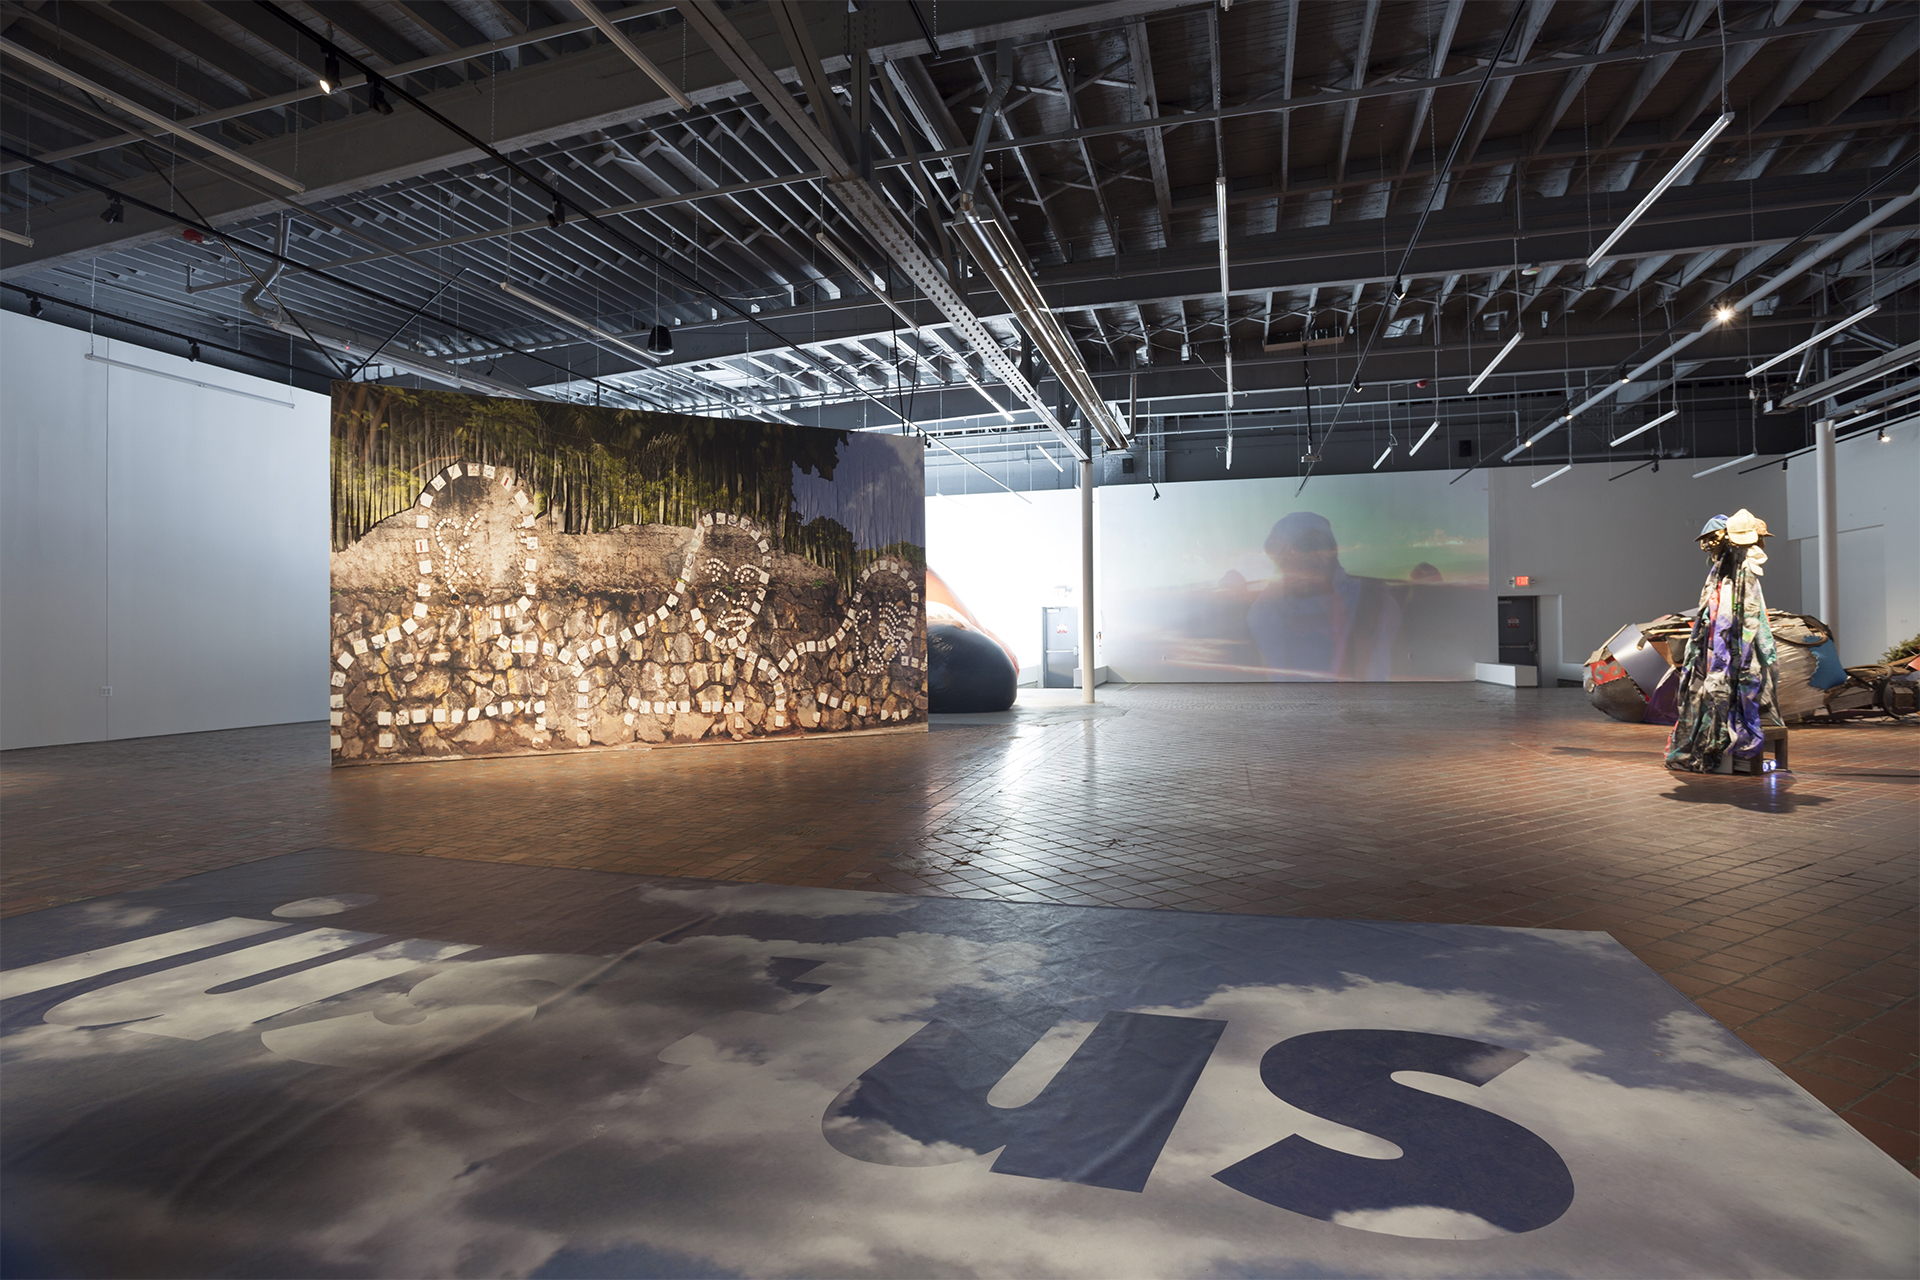 Installation view of the exhibition Sanford Biggers: Subjective Cosmology at MOCAD, 2017